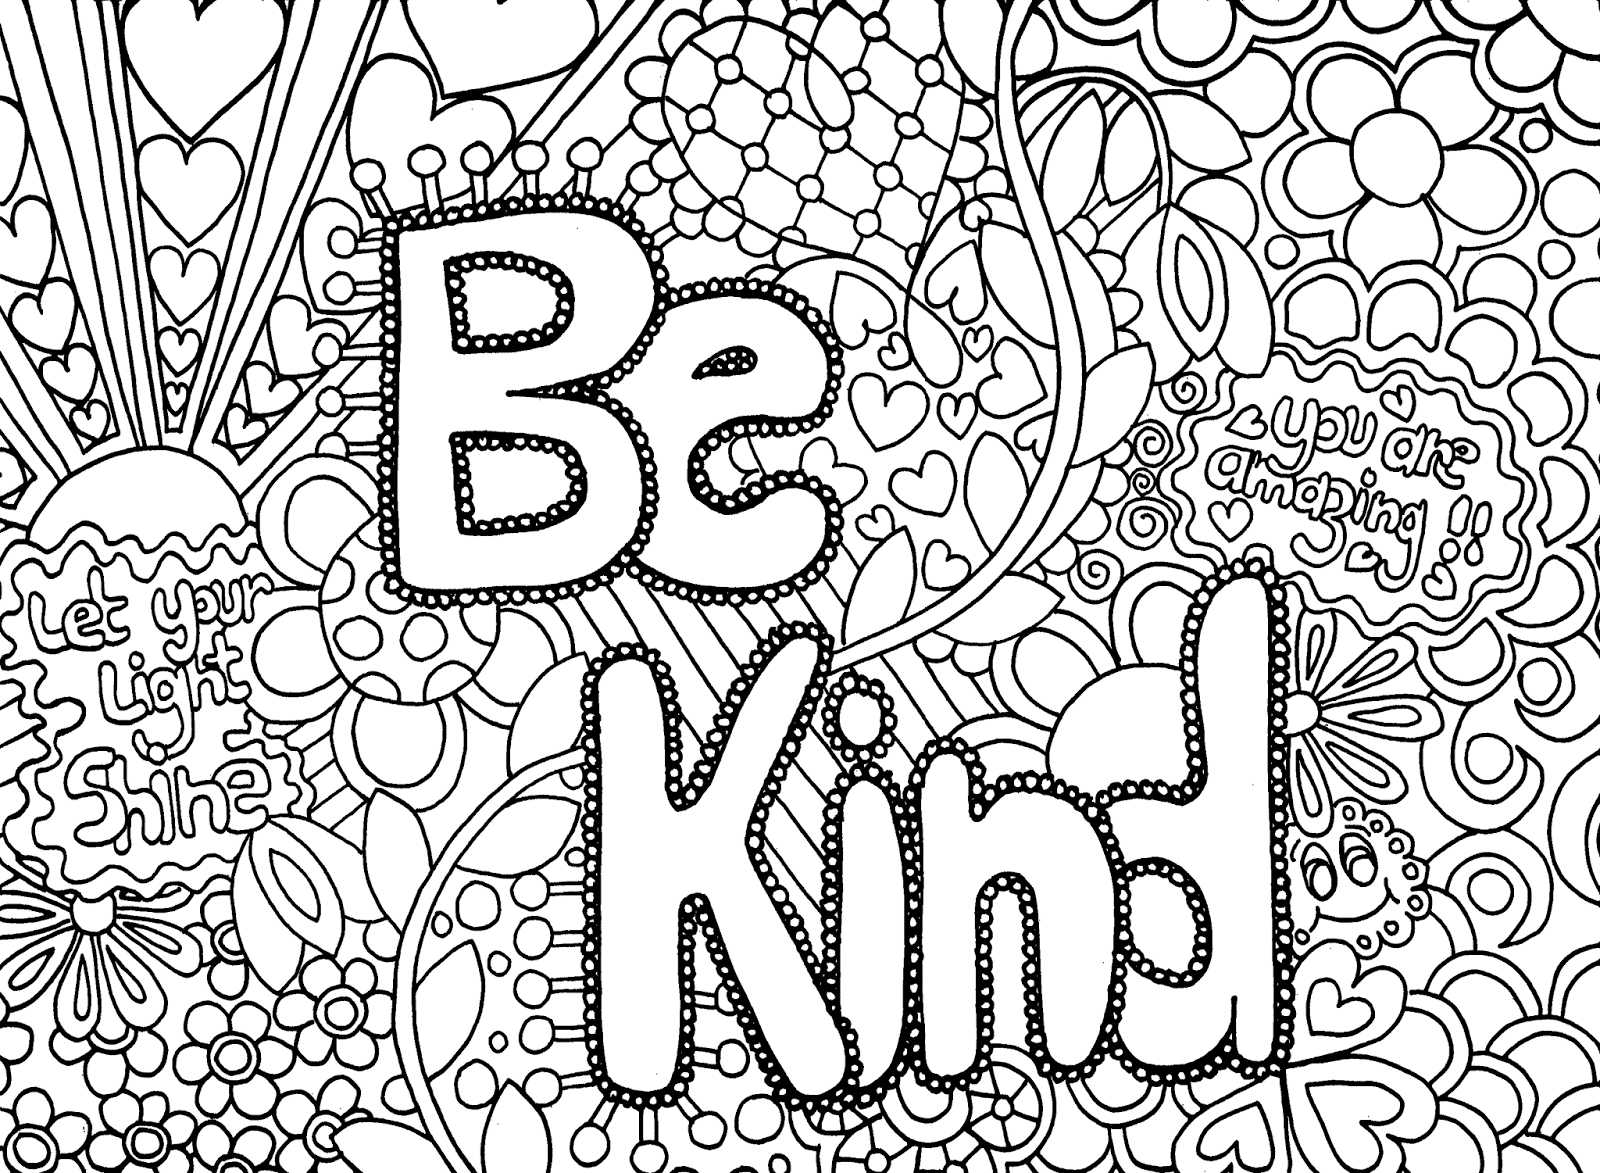 For The Last Few Years Kid S Coloring Pages Printed From The